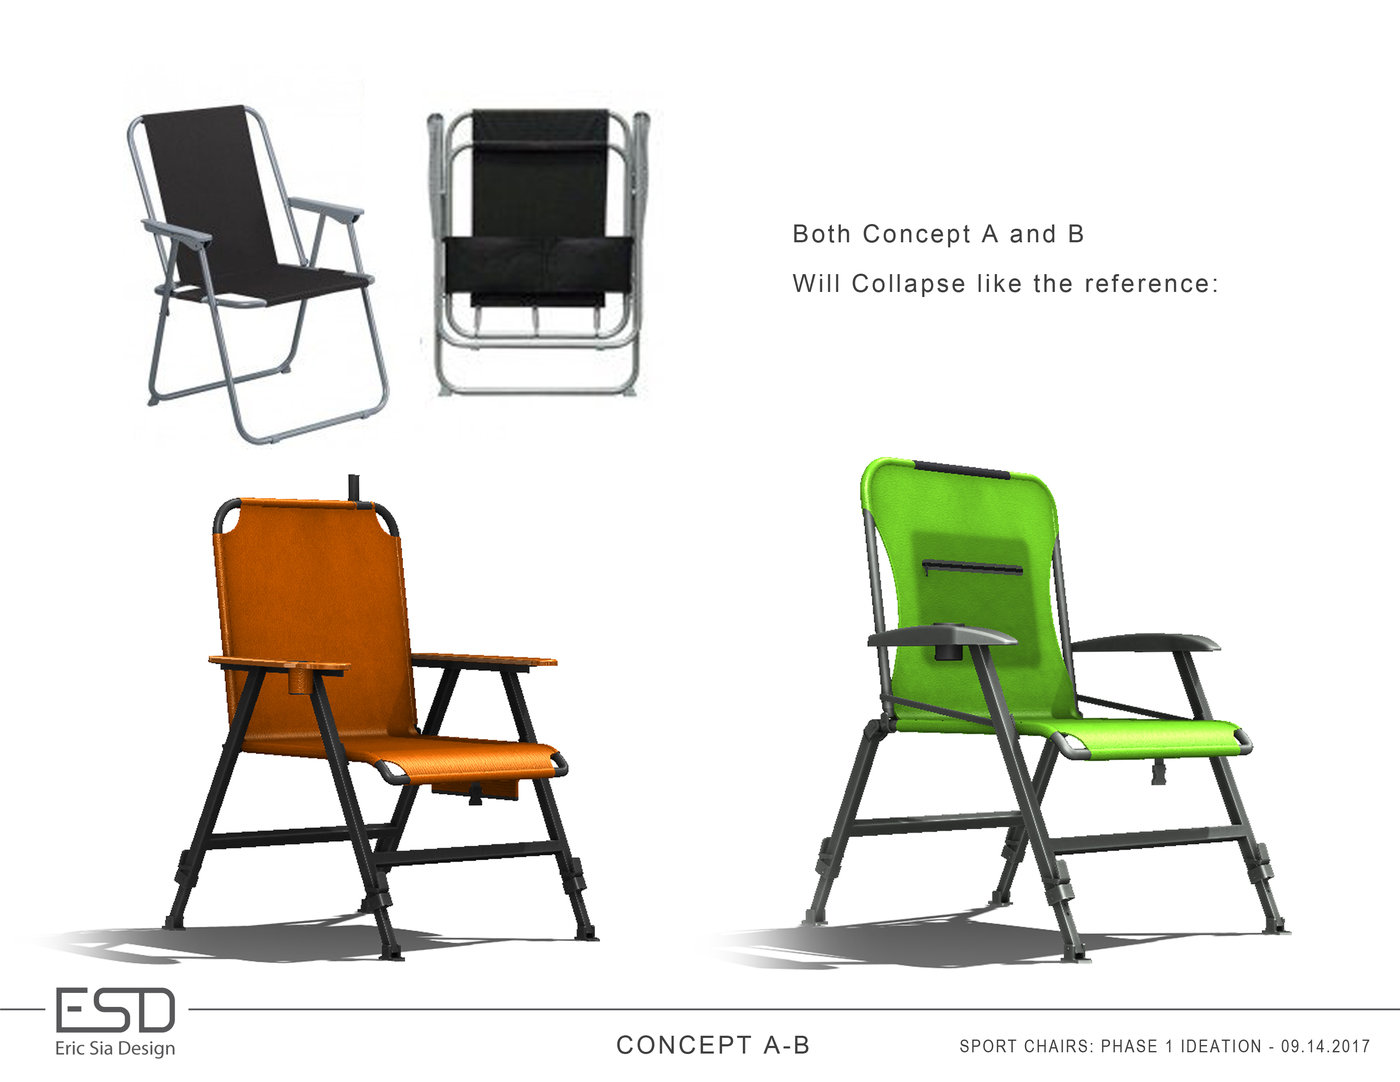 Magnificent Folding Chairs Concepts By Eric Sia At Coroflot Com Ncnpc Chair Design For Home Ncnpcorg